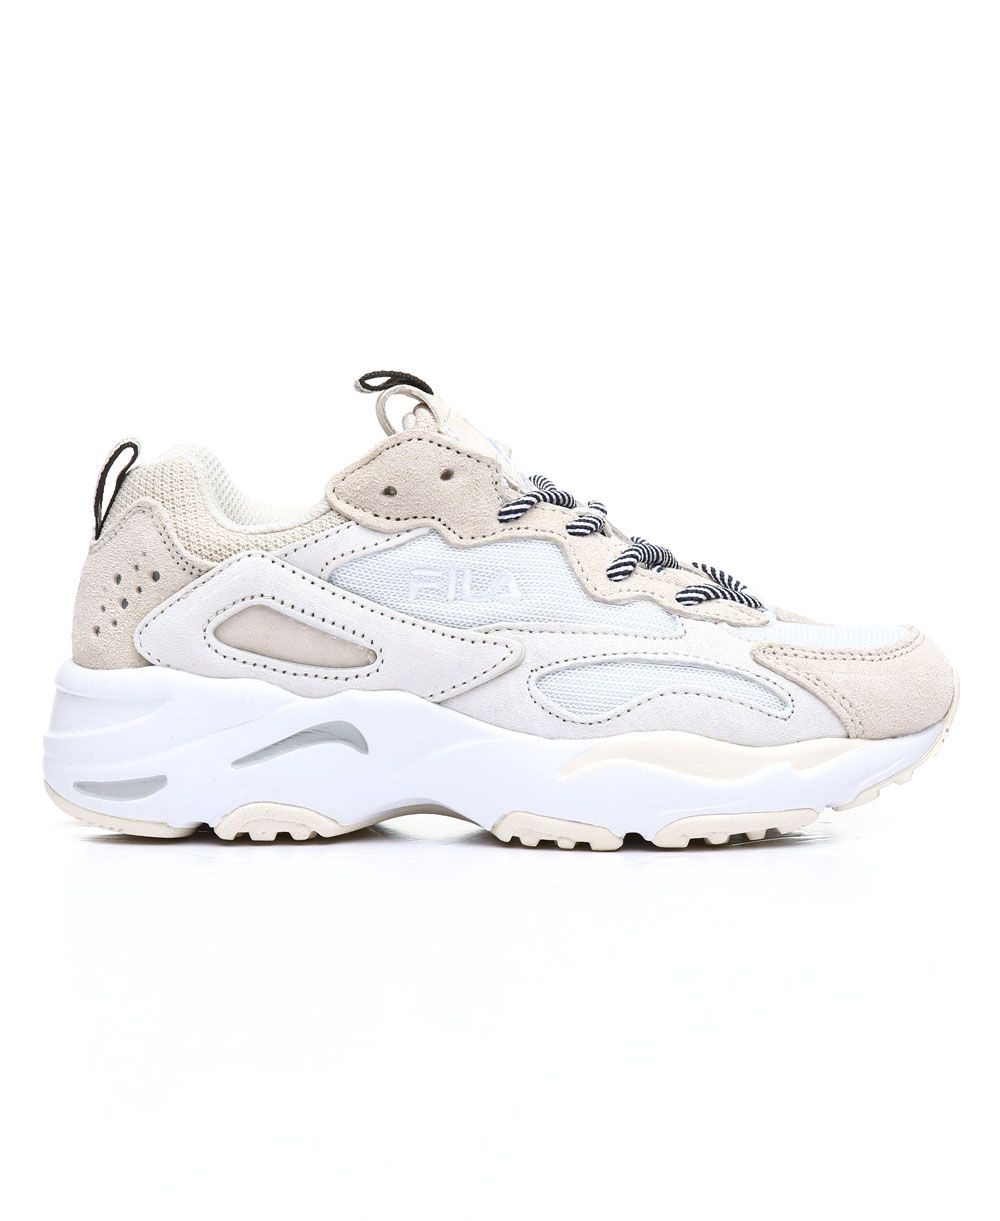 Beige ray tracer sneakers shoes beige